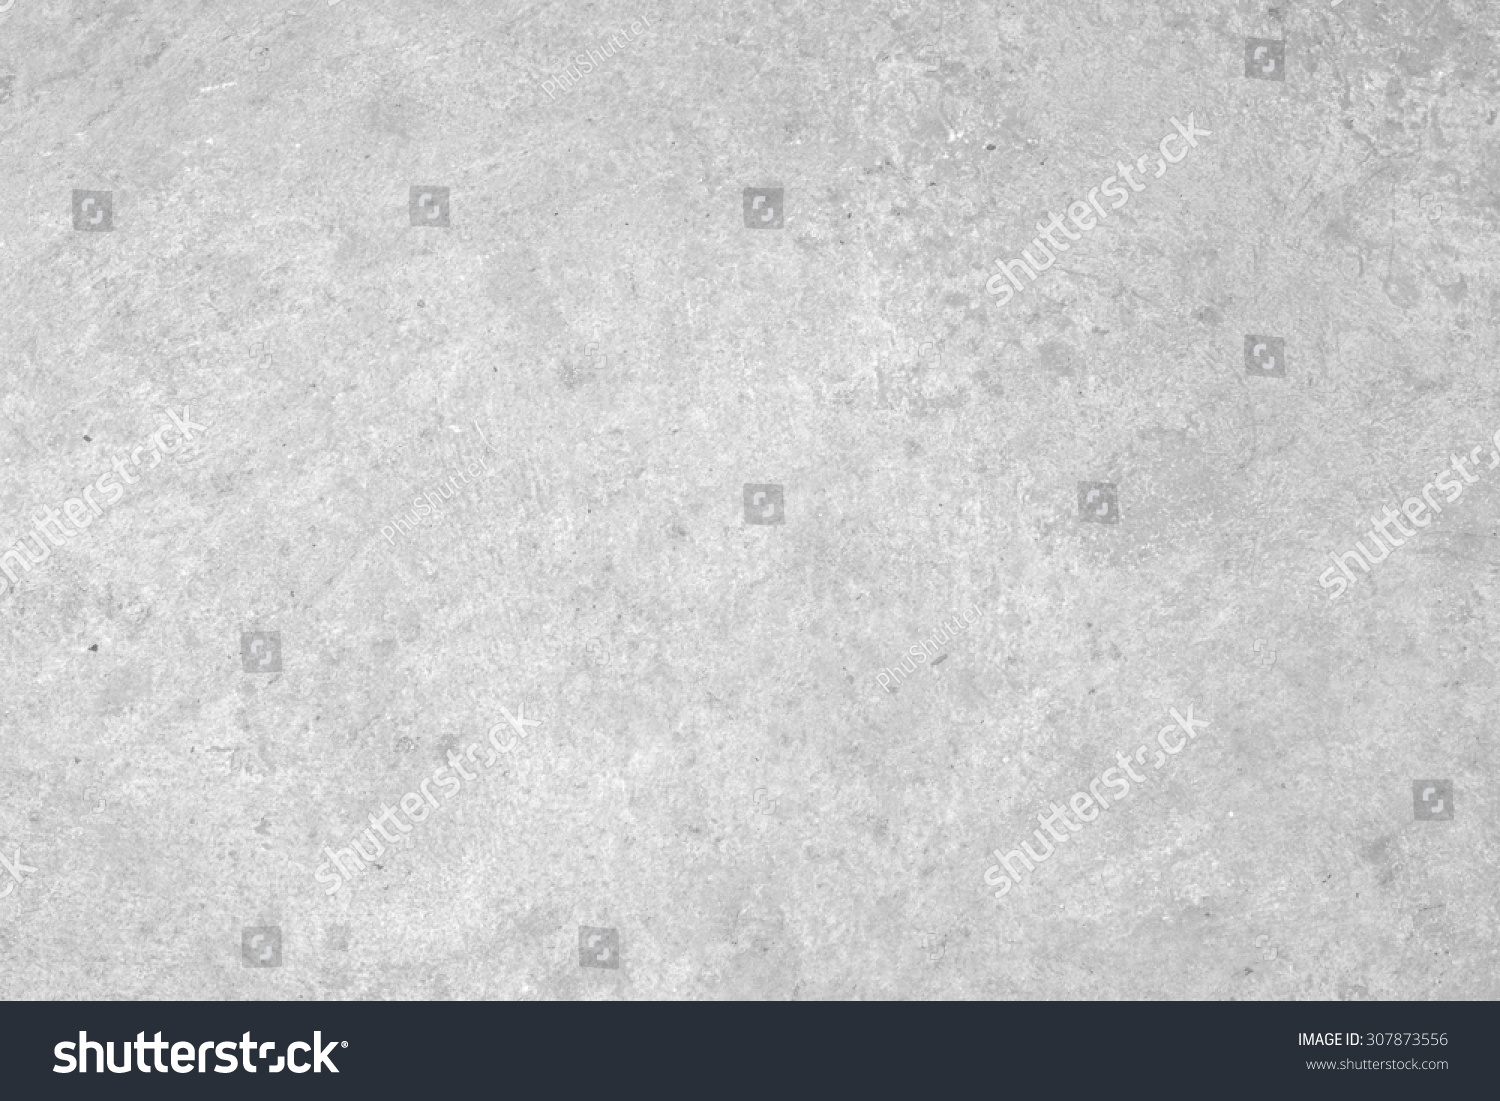 Concrete Floor White Dirty Old Cement Stock Photo ...